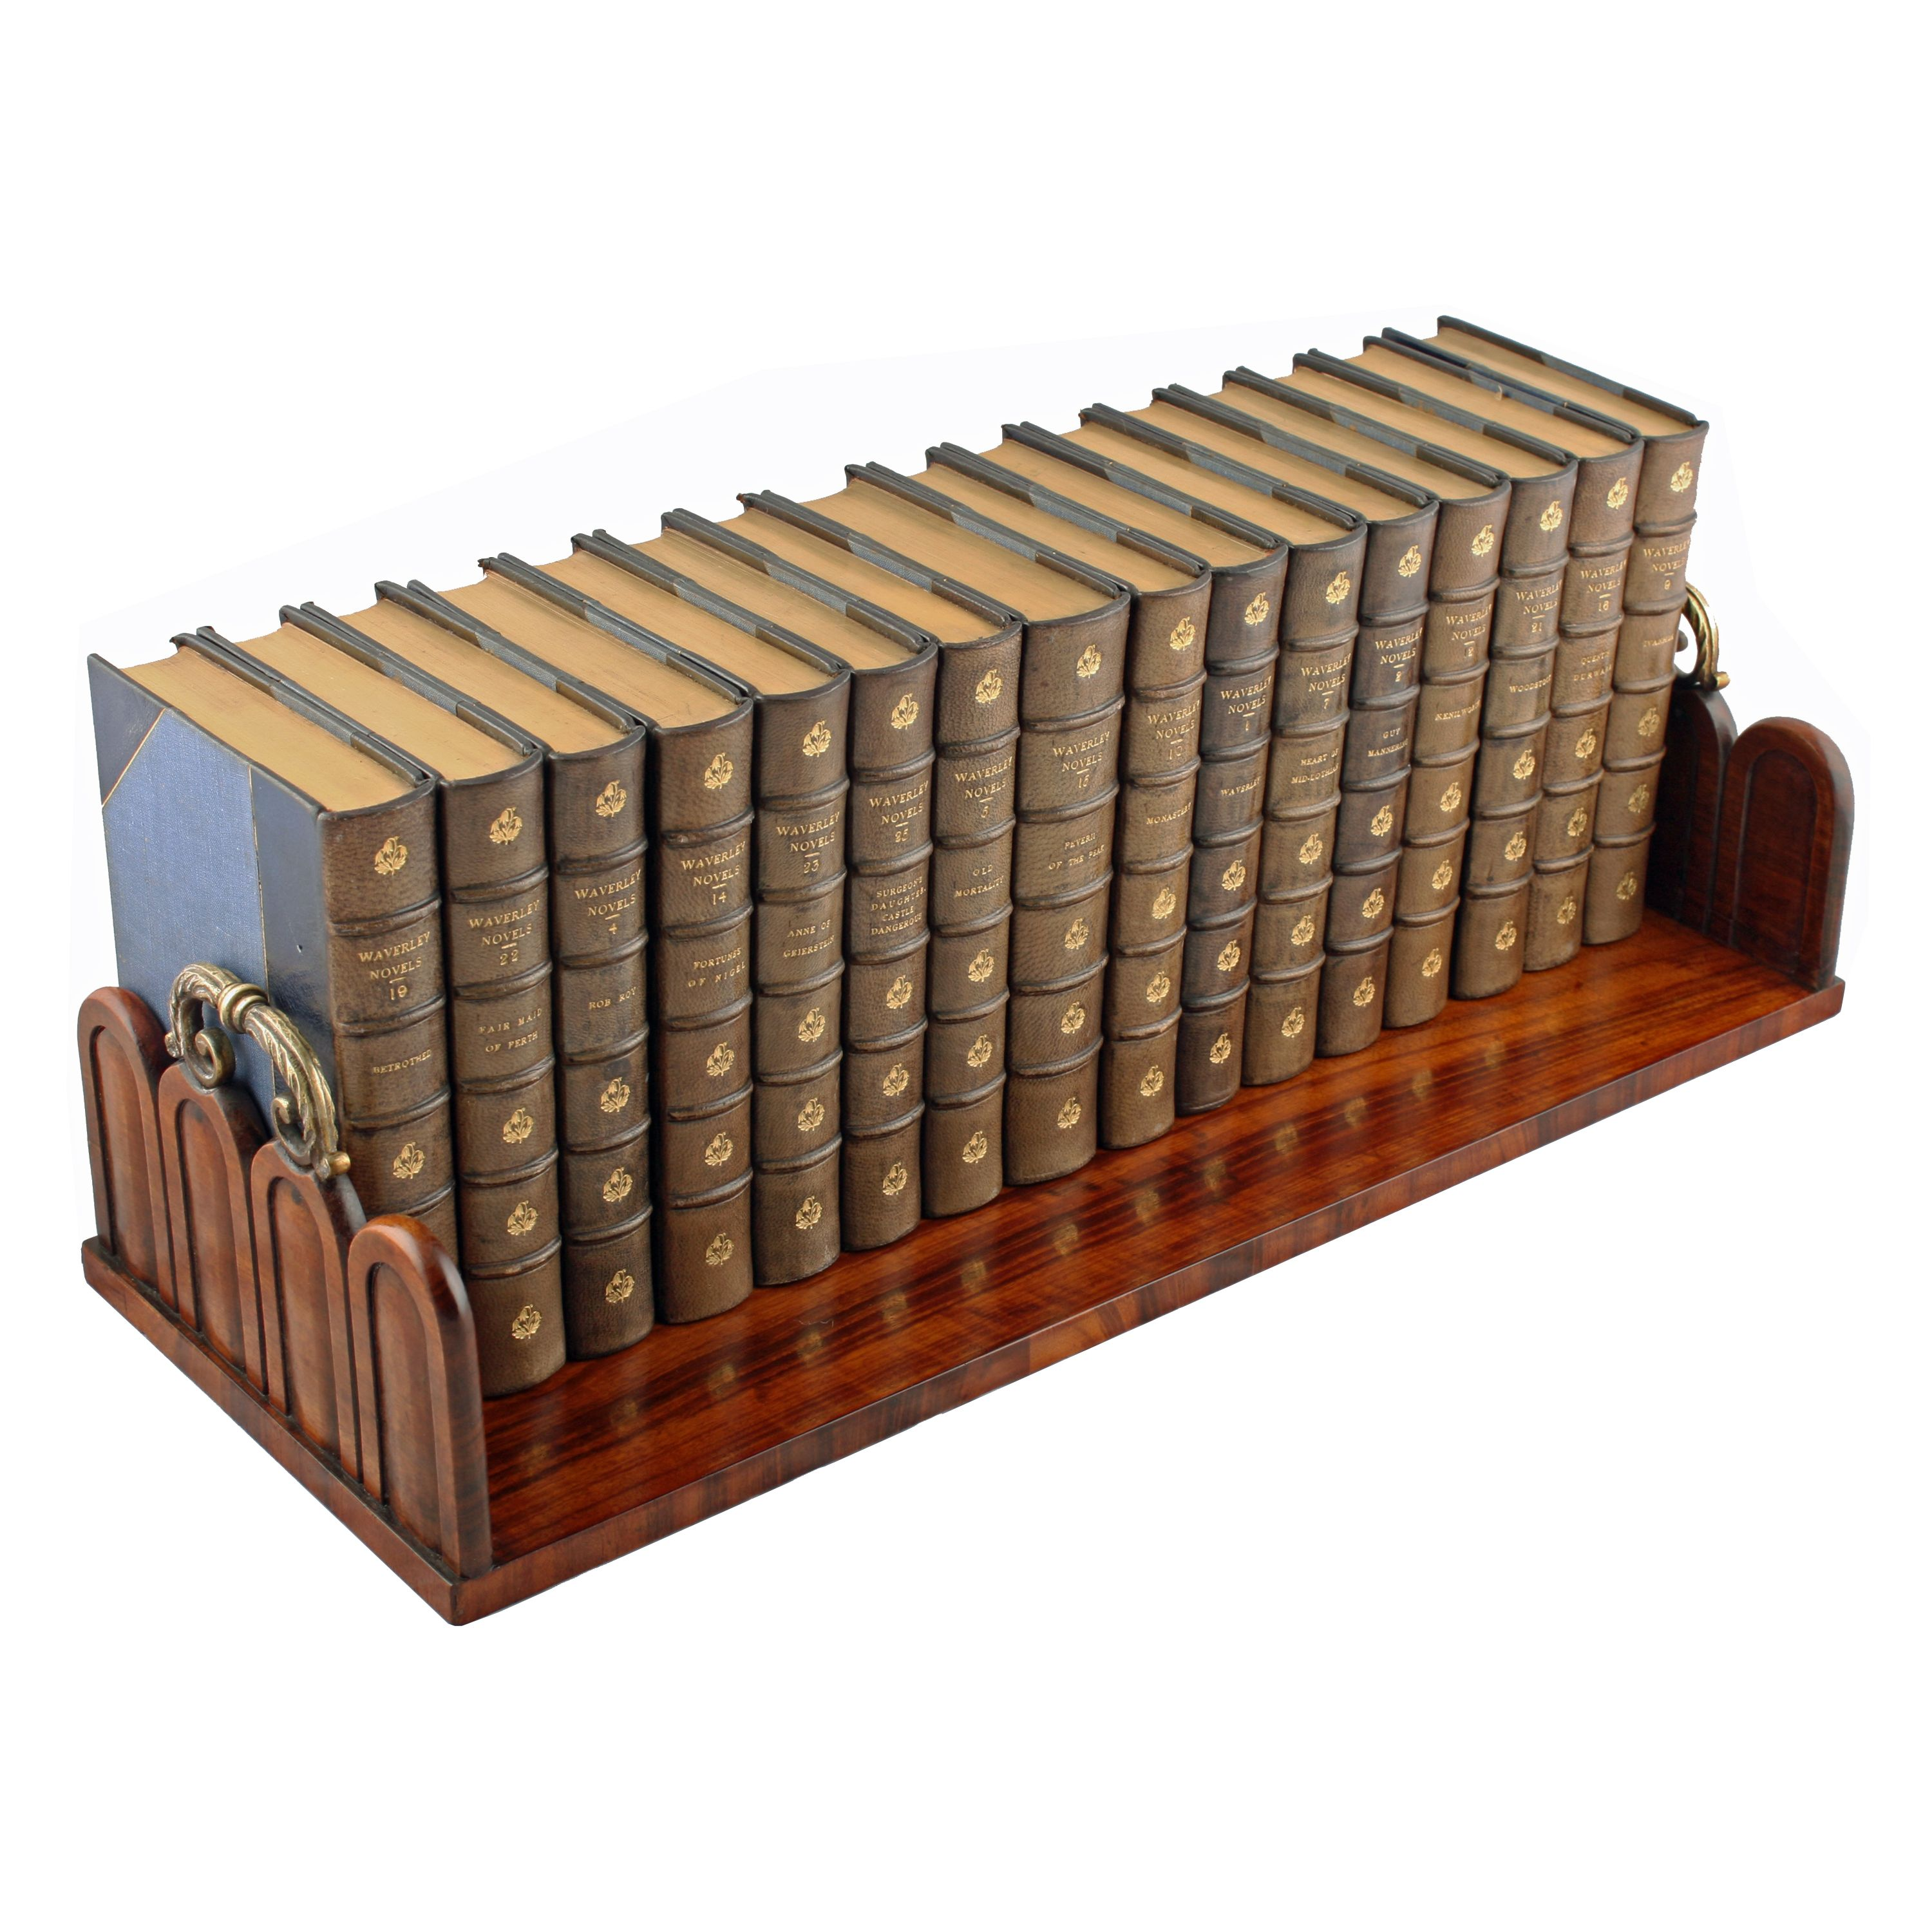 George iv zebra wood book stand sold furniture and accessories